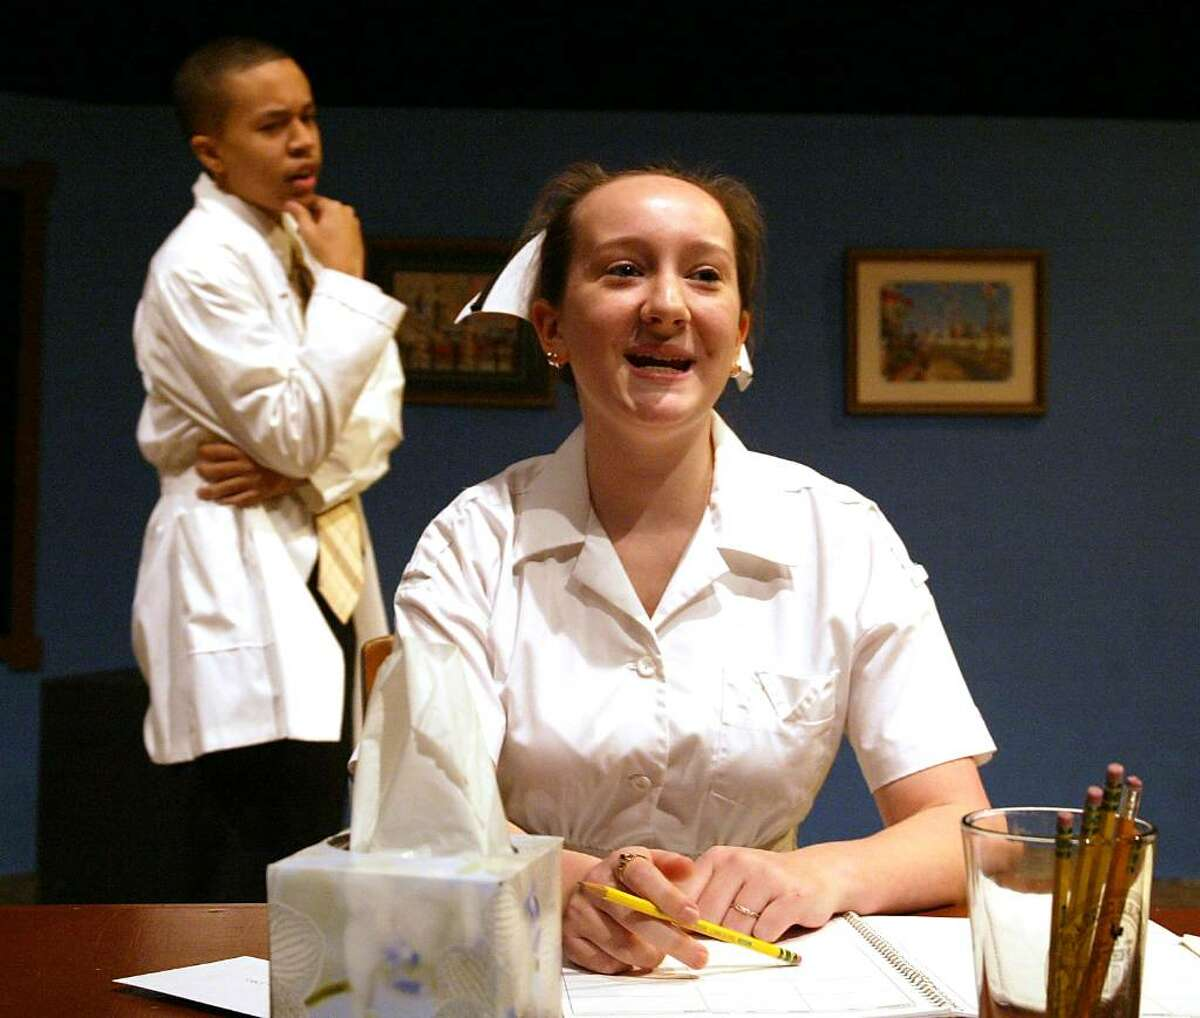 Stratford High School seniors, (L-R) Joshua Anderade and Torry Tallberg rehearse a scene from the school production of Cactus Flower, which opens Nov. 13, 2009 in Stratford, Wednesday, Nov. 11, 2009.